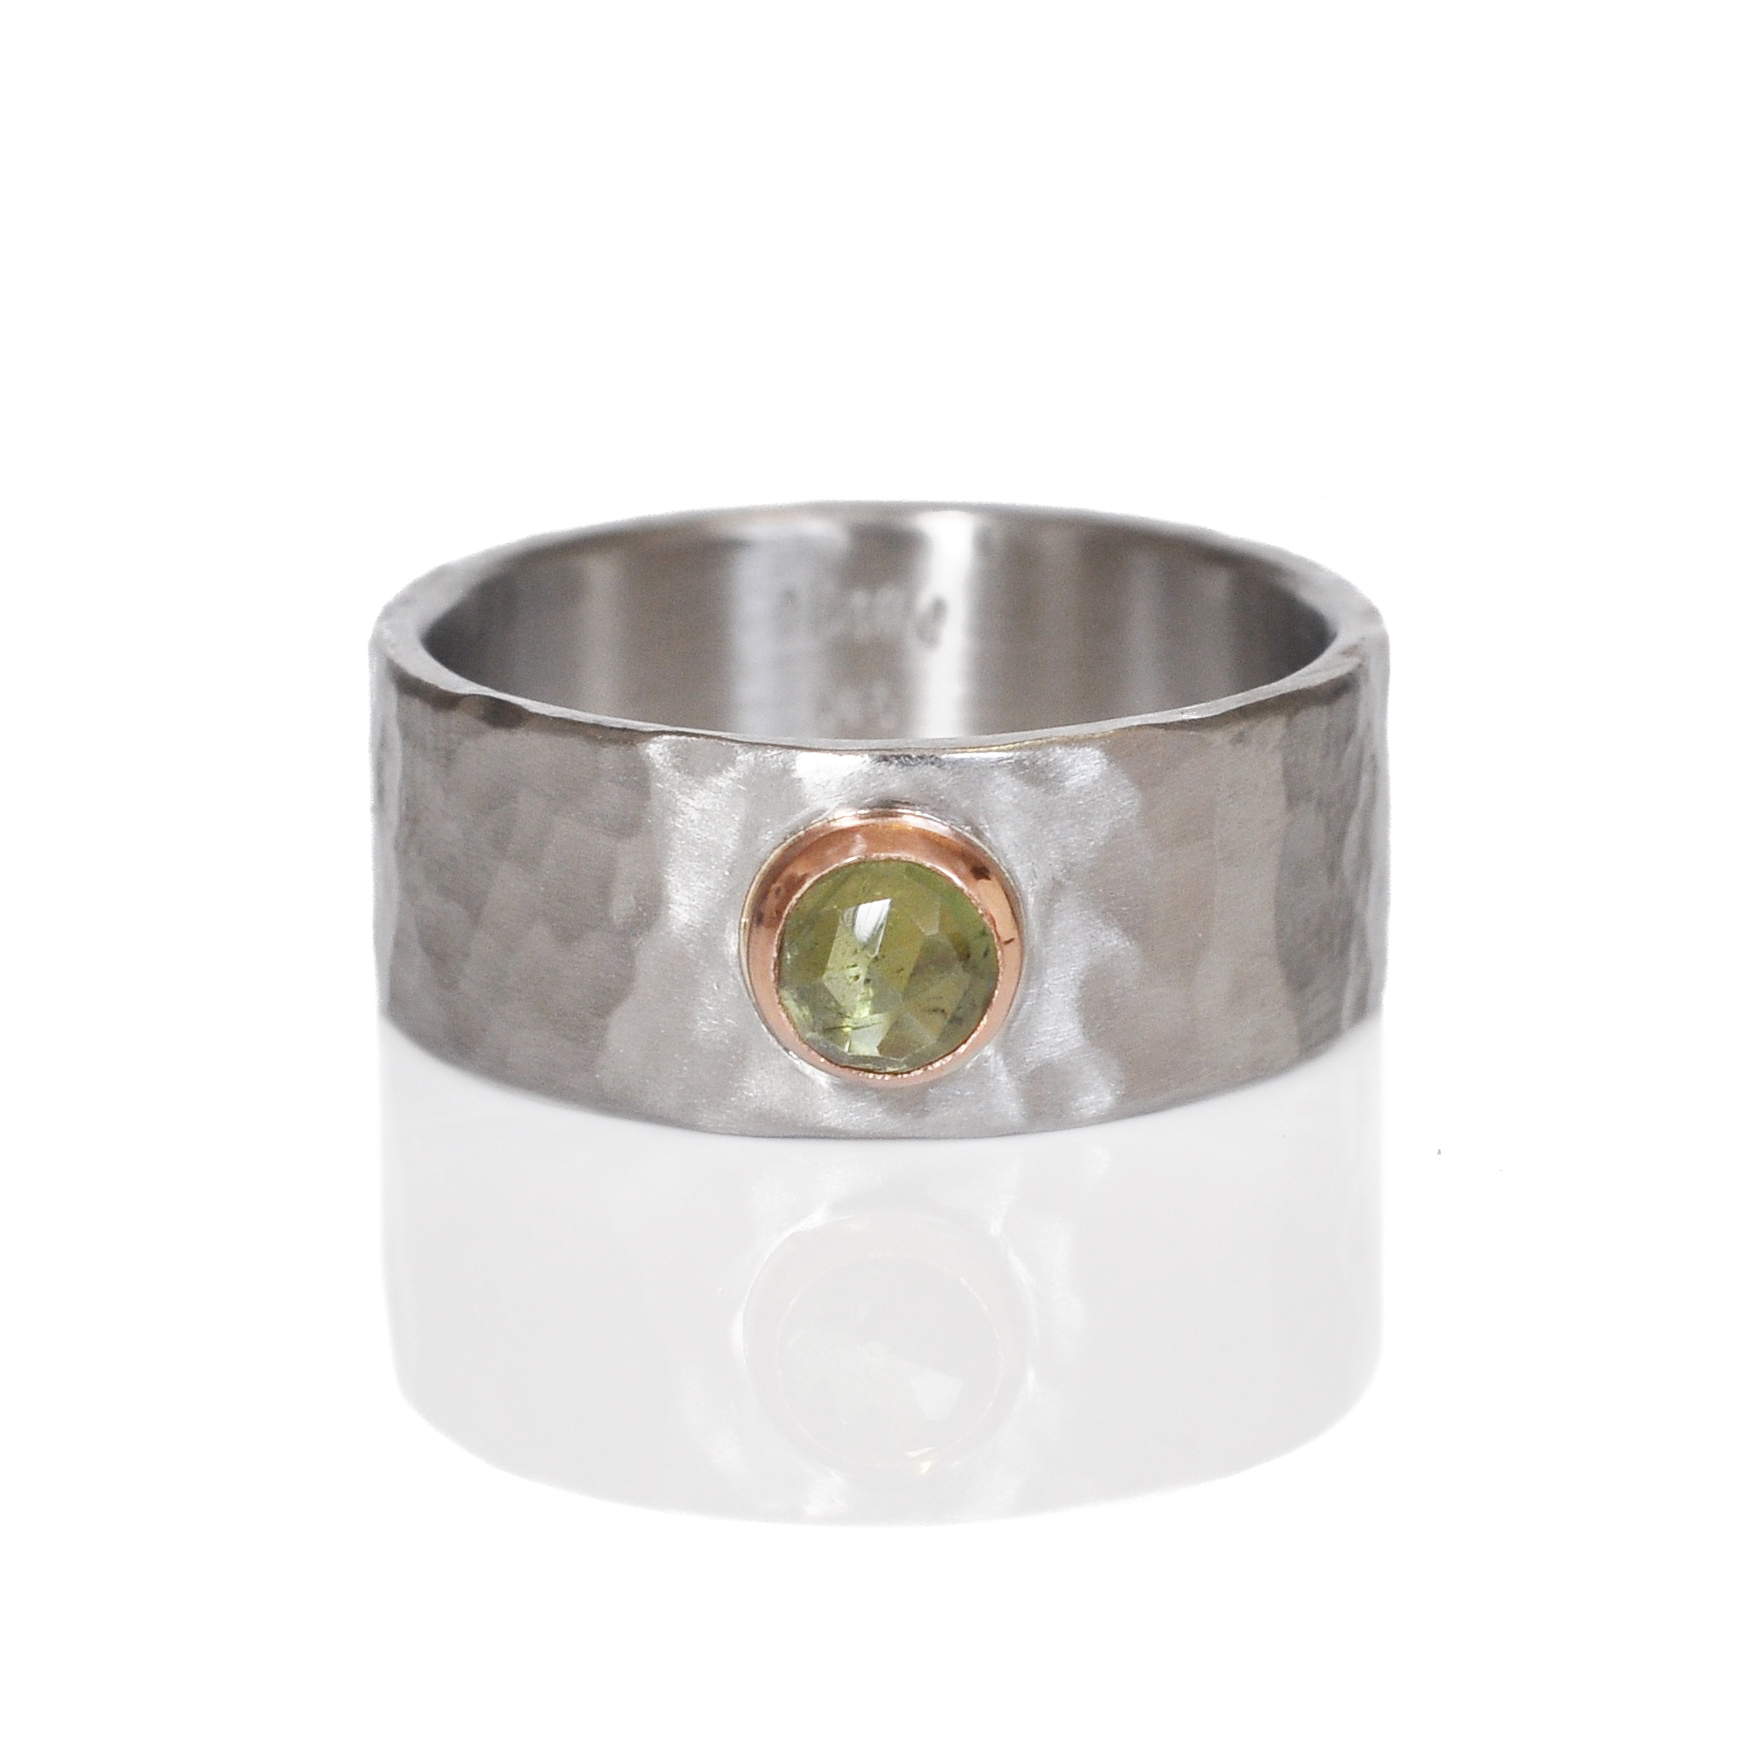 Green rose cut sapphire in 14k red gold set into a hammered 950 palladium band.